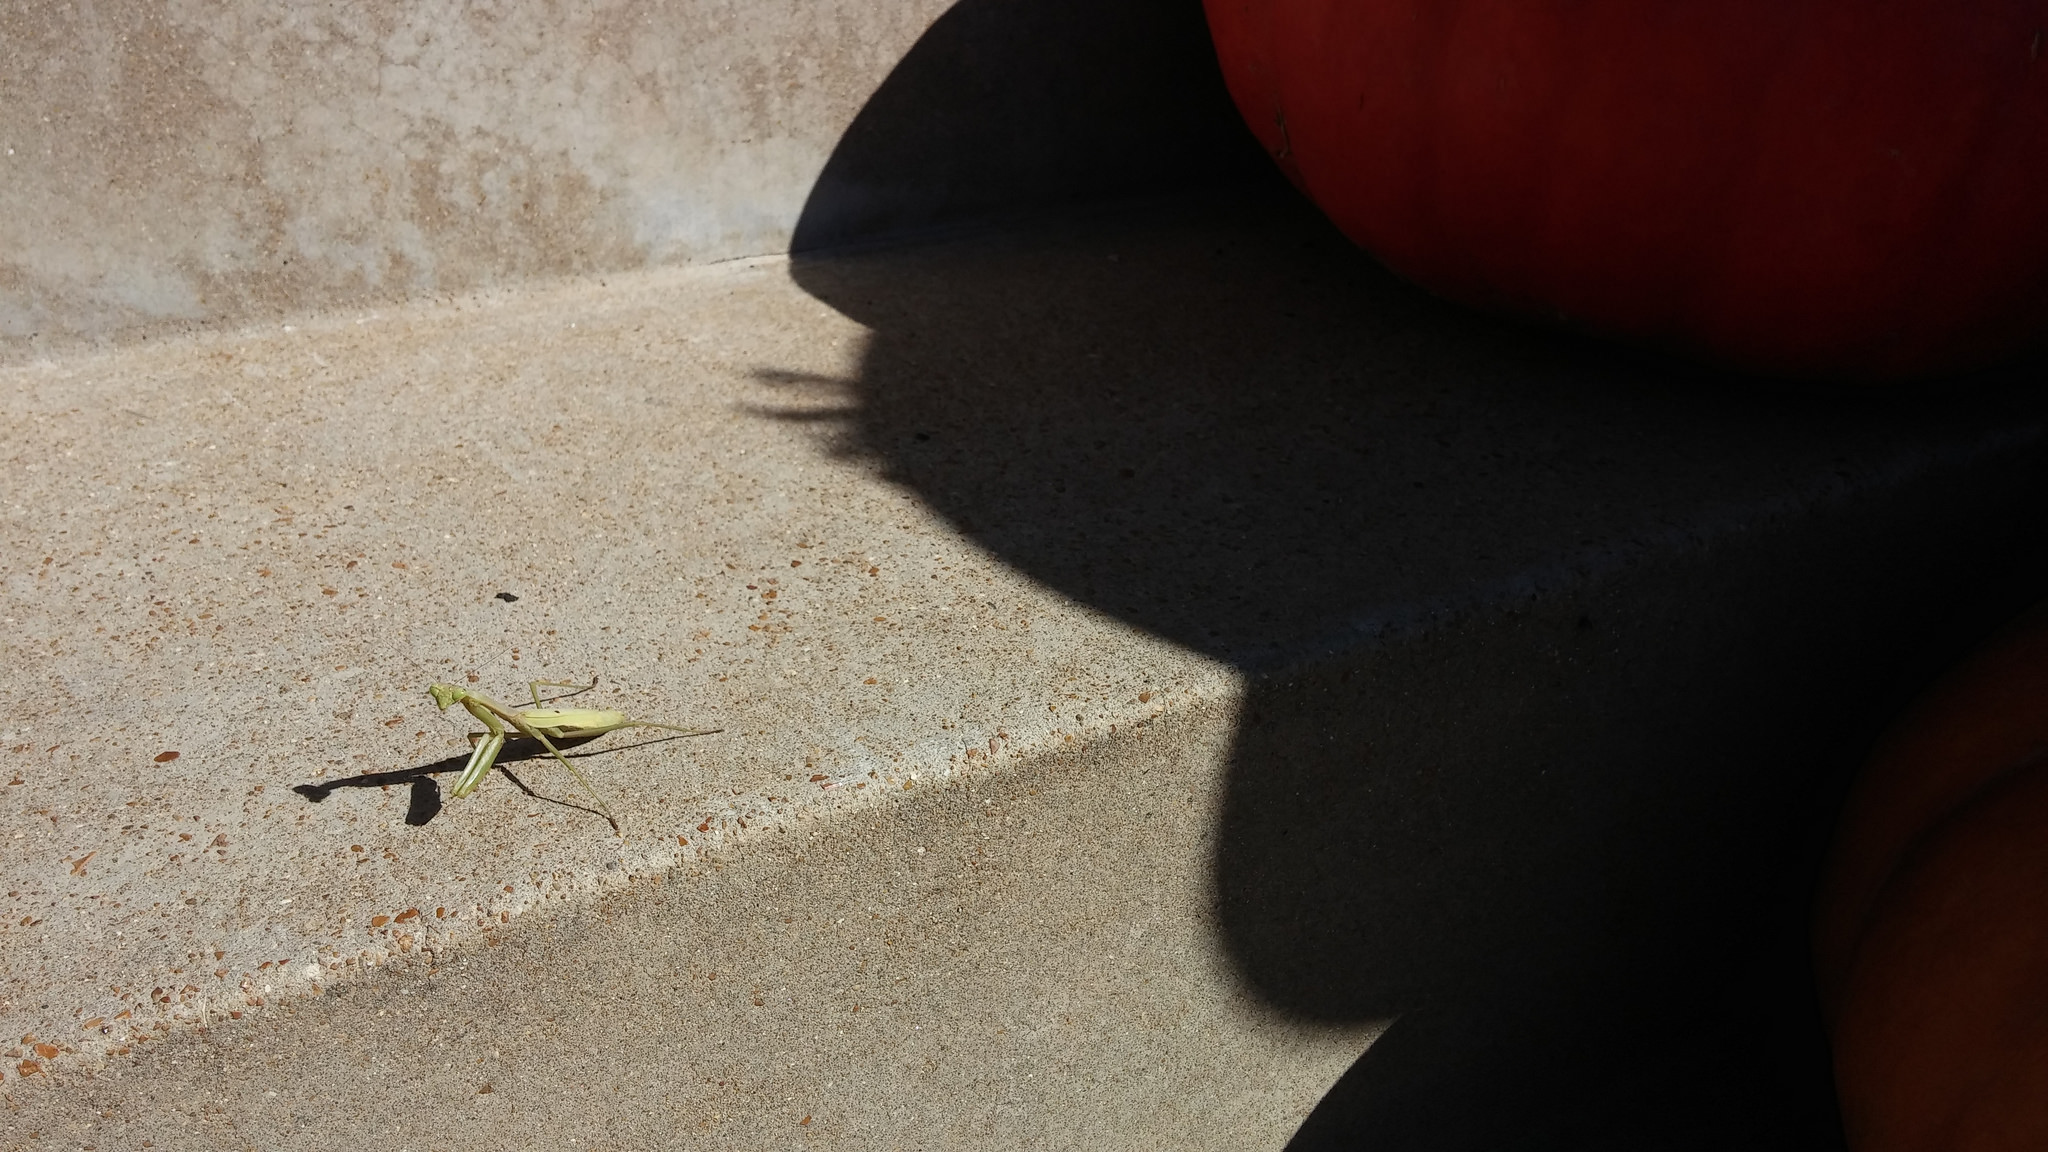 Preying Mantis on my front steps, right before the dog stepped on it. :(